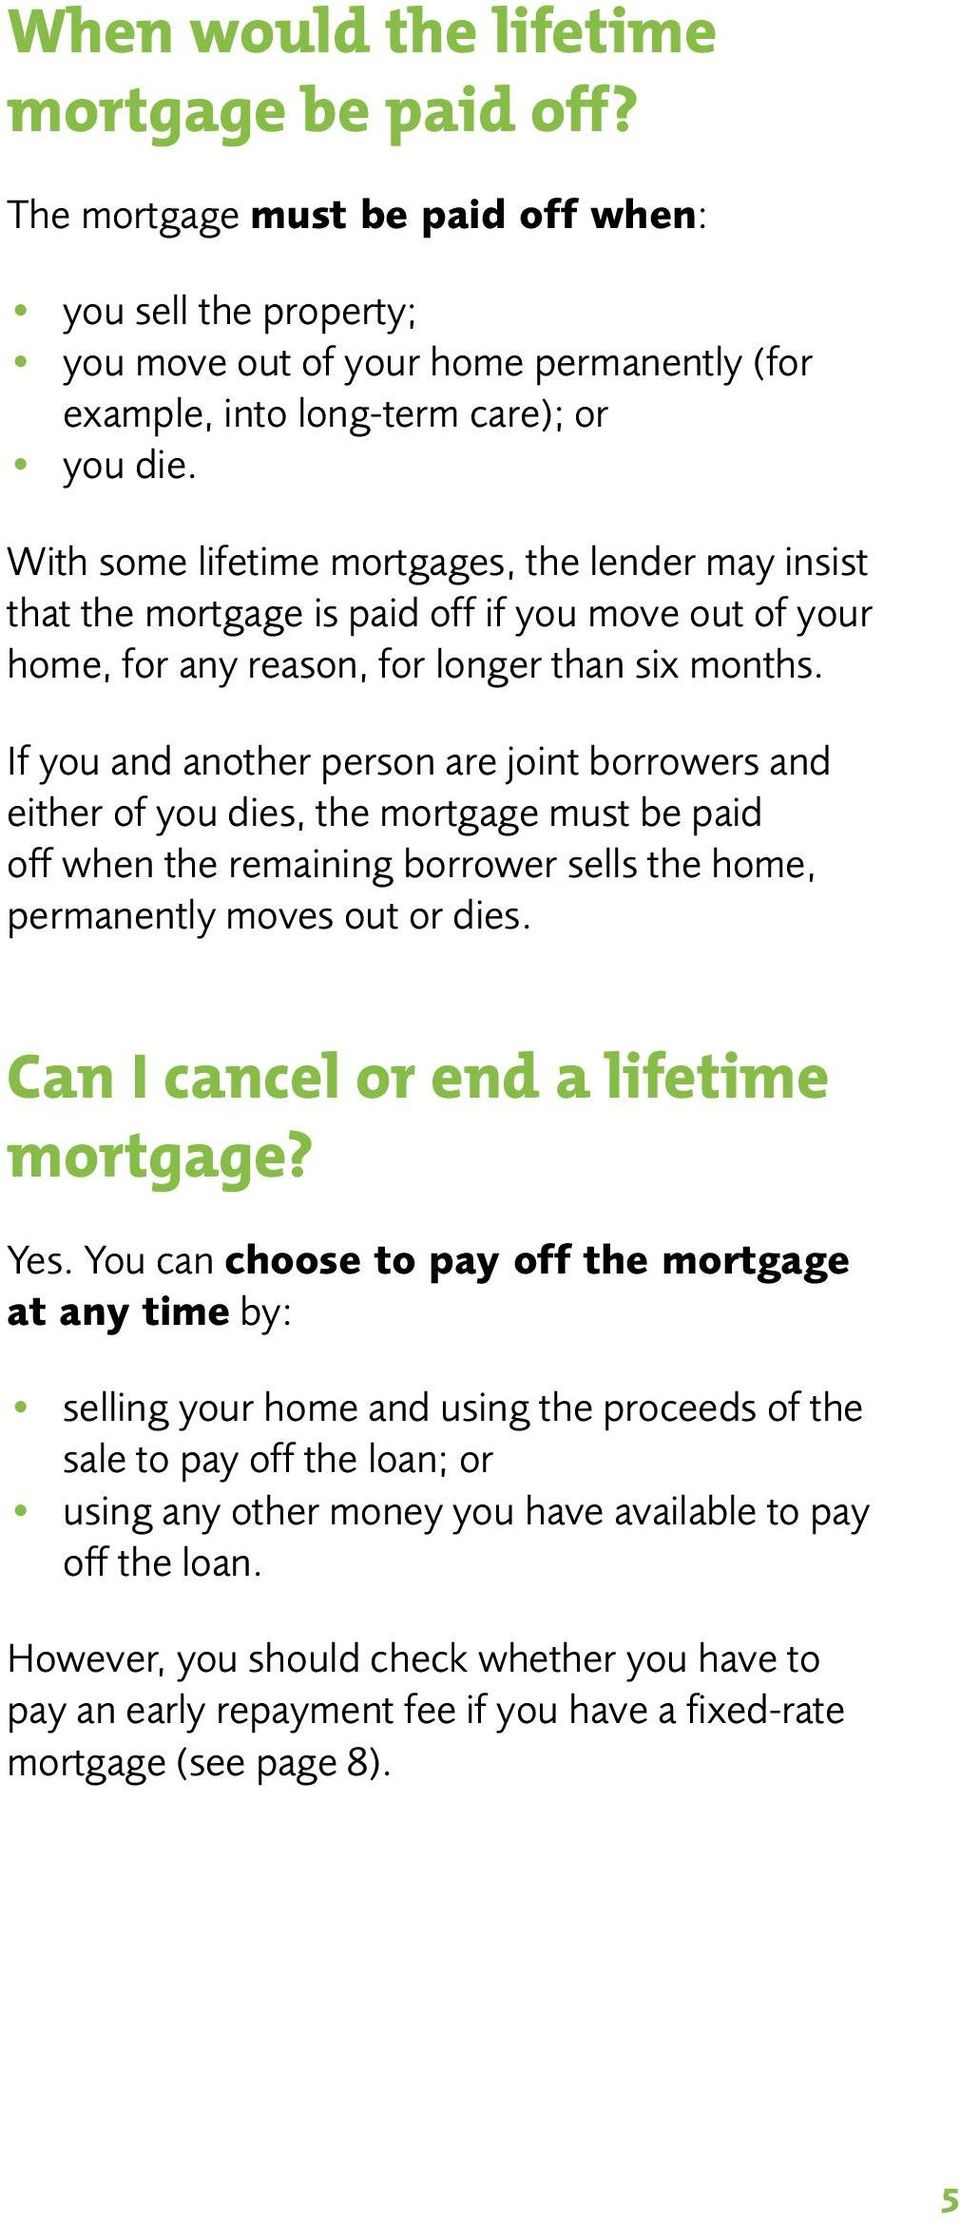 If you and another person are joint borrowers and either of you dies, the mortgage must be paid off when the remaining borrower sells the home, permanently moves out or dies.